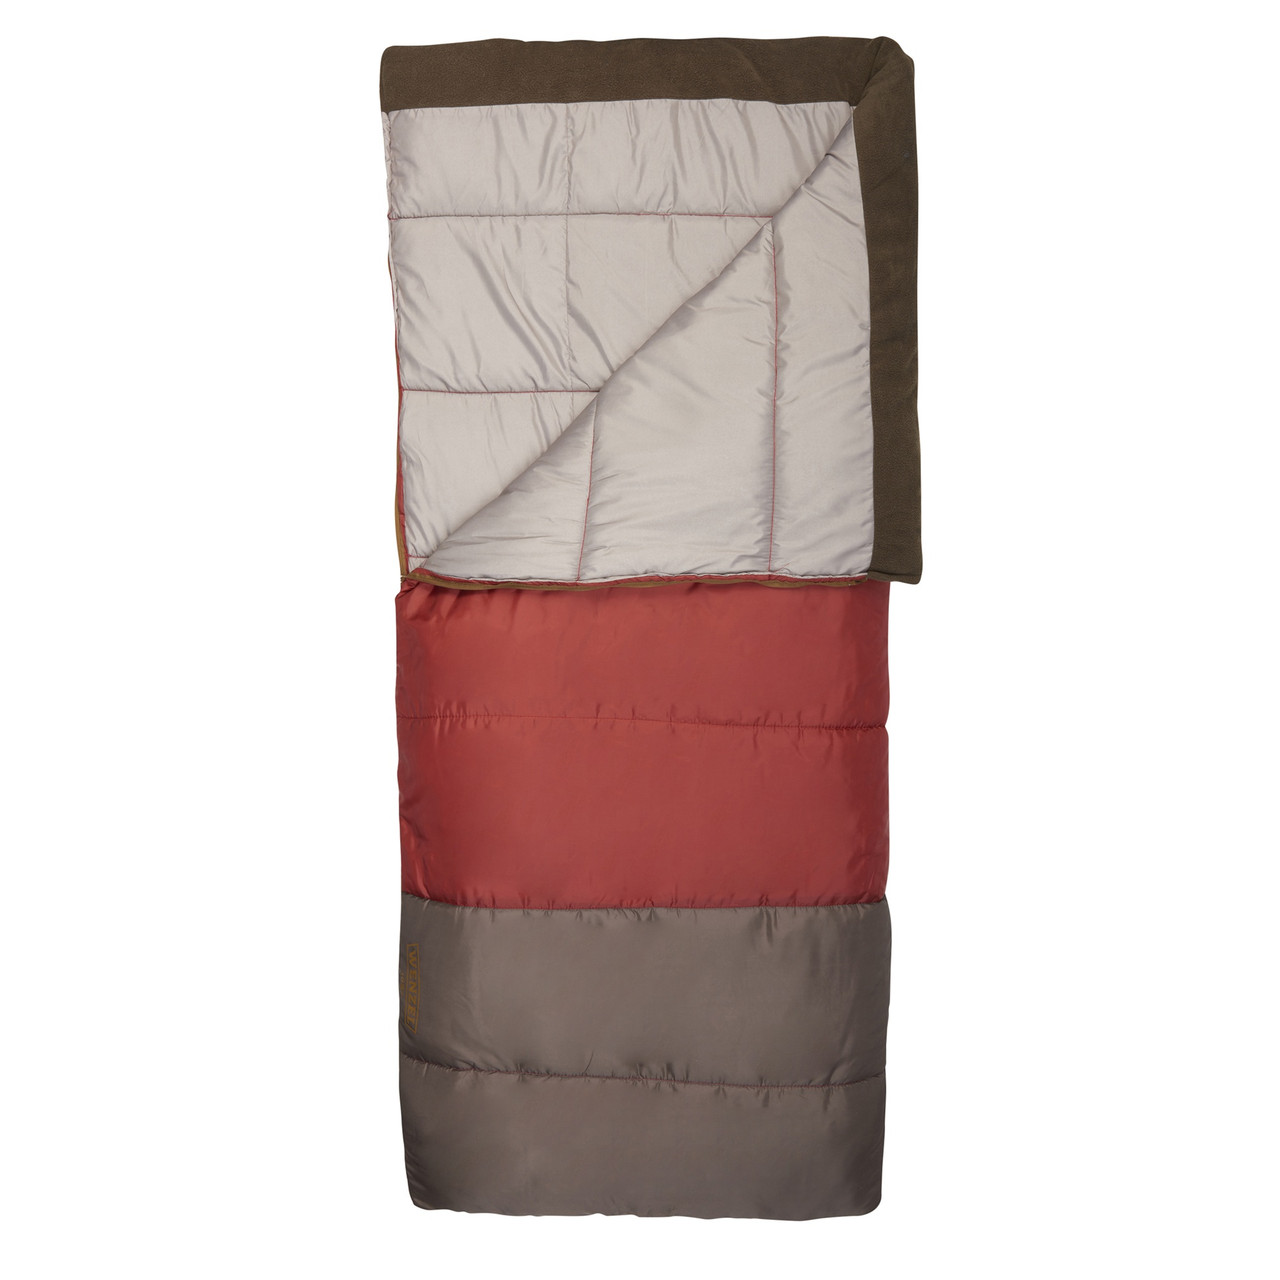 Wenzel Lodgepole Sleeping Bag, red, shown partially unzipped